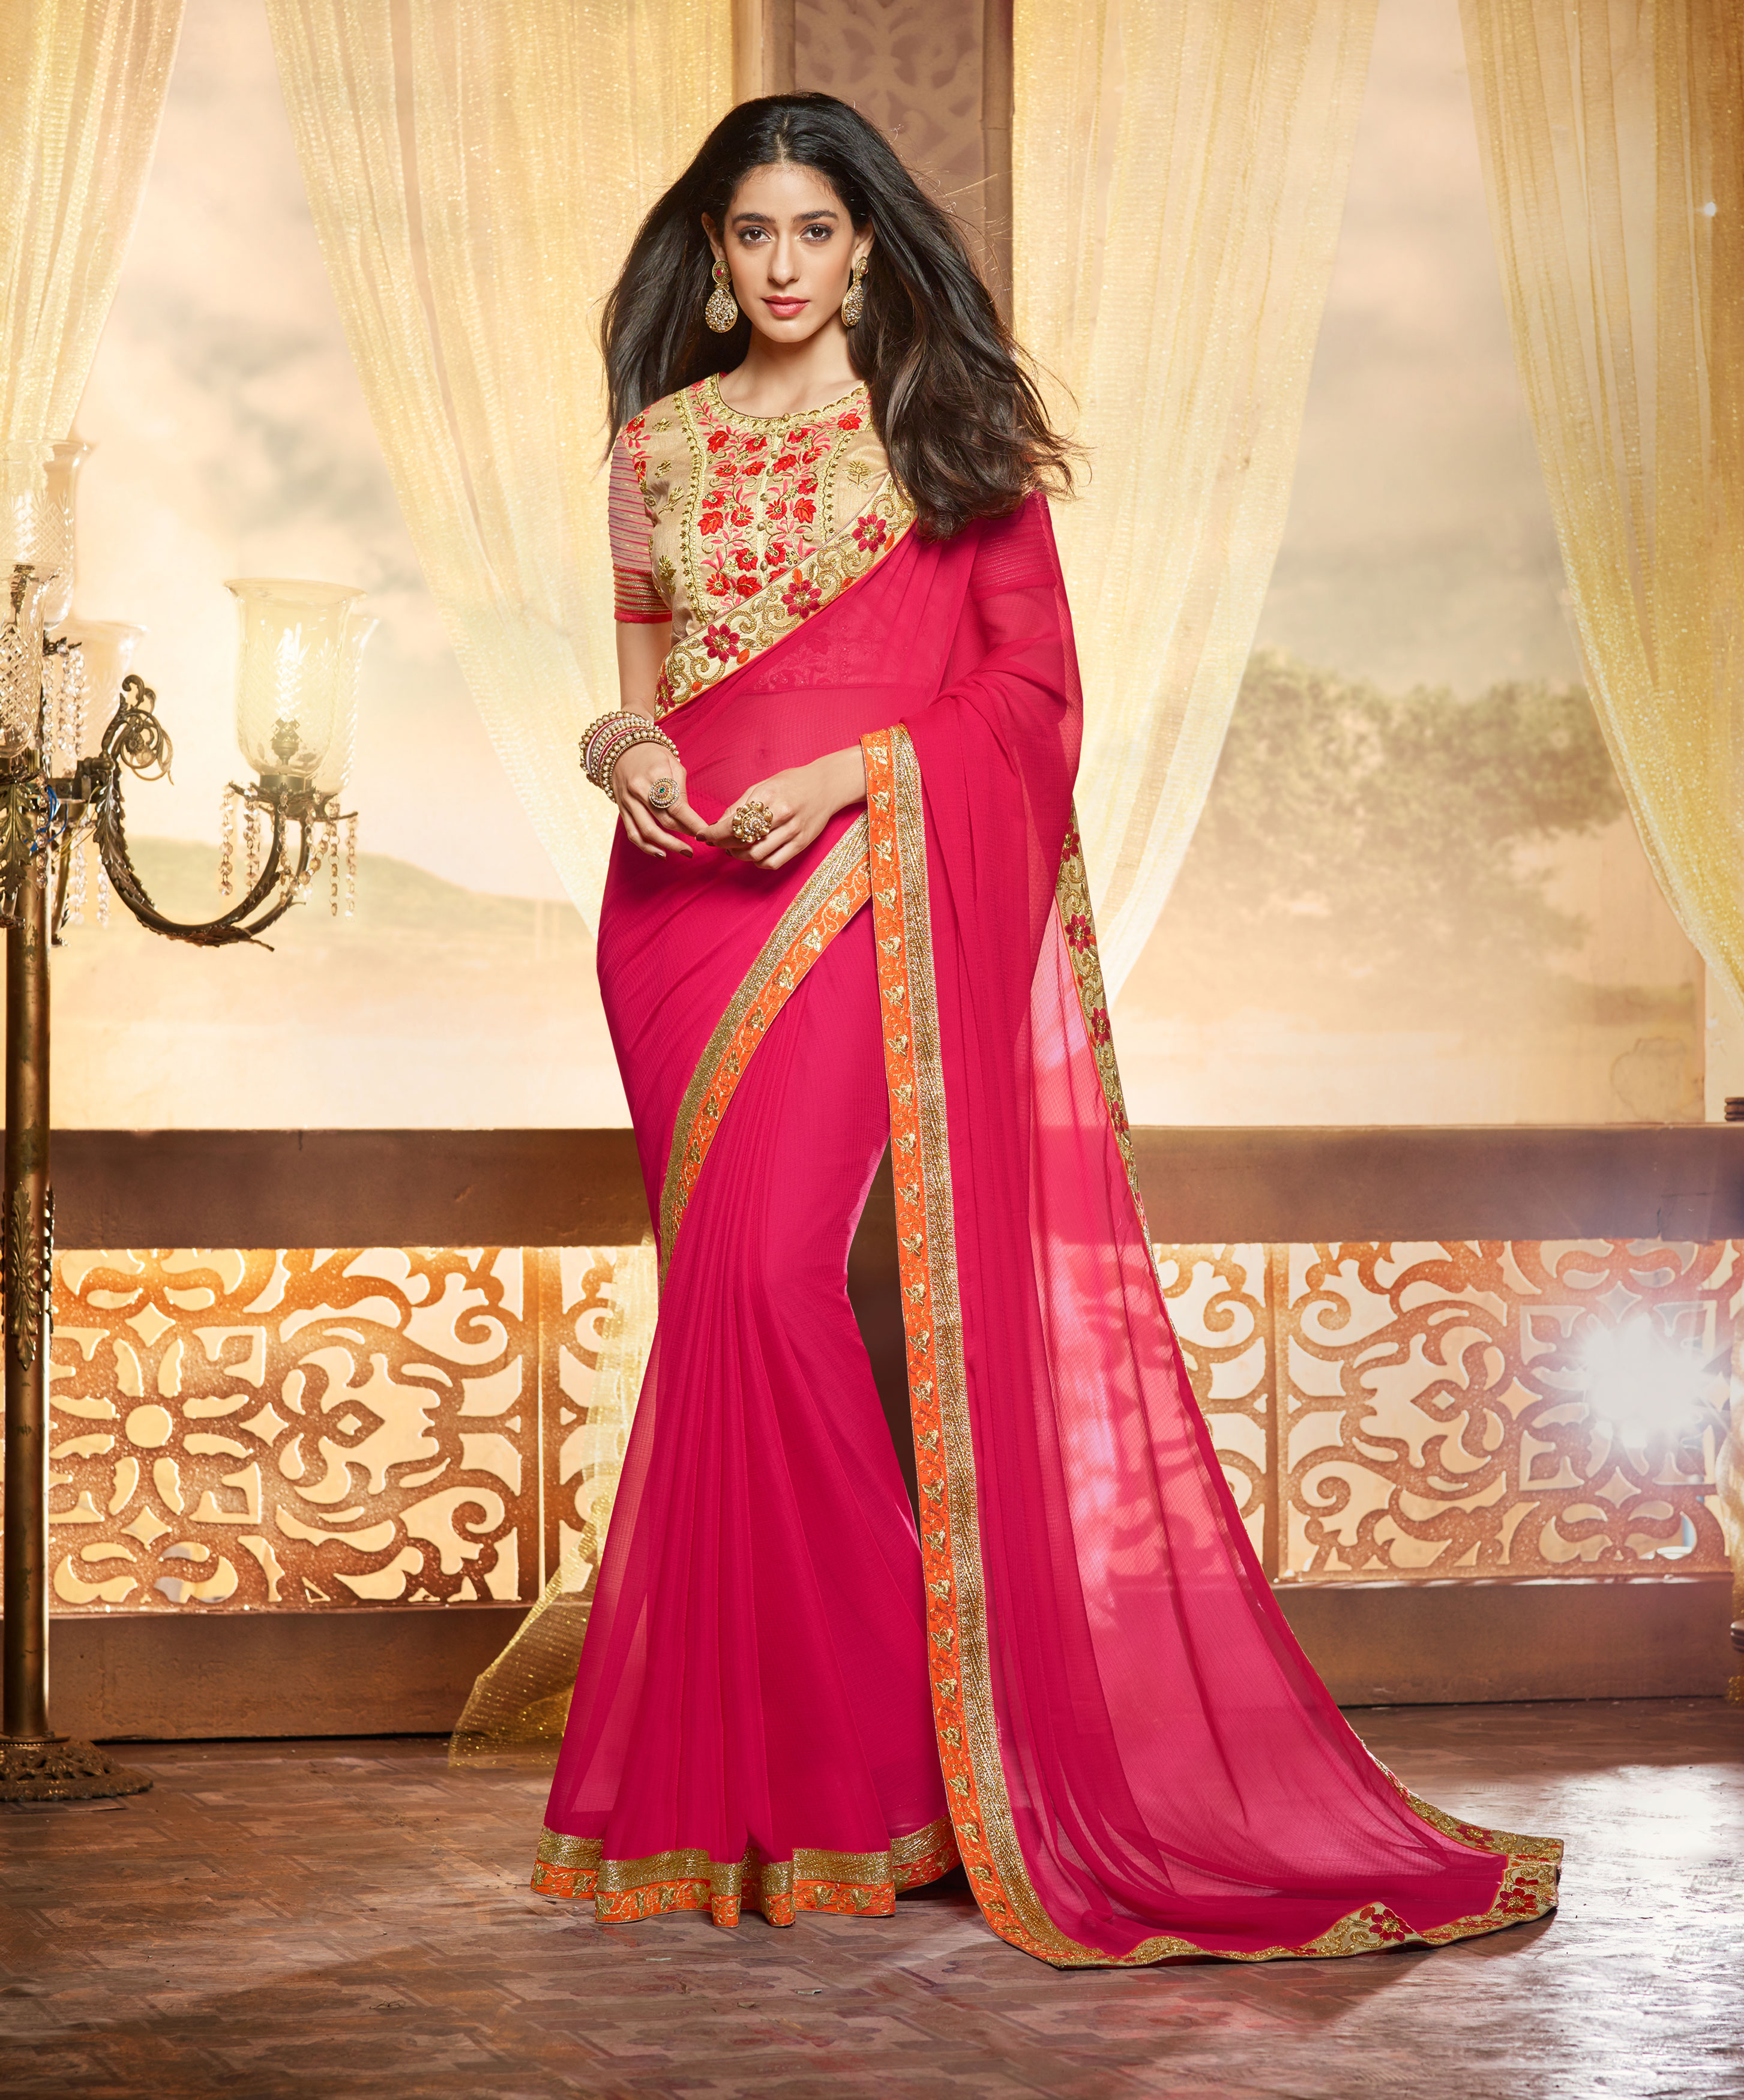 ralsaree Real Saree Women's Pink Soft Chiffon Embroidered Saree With Blouse